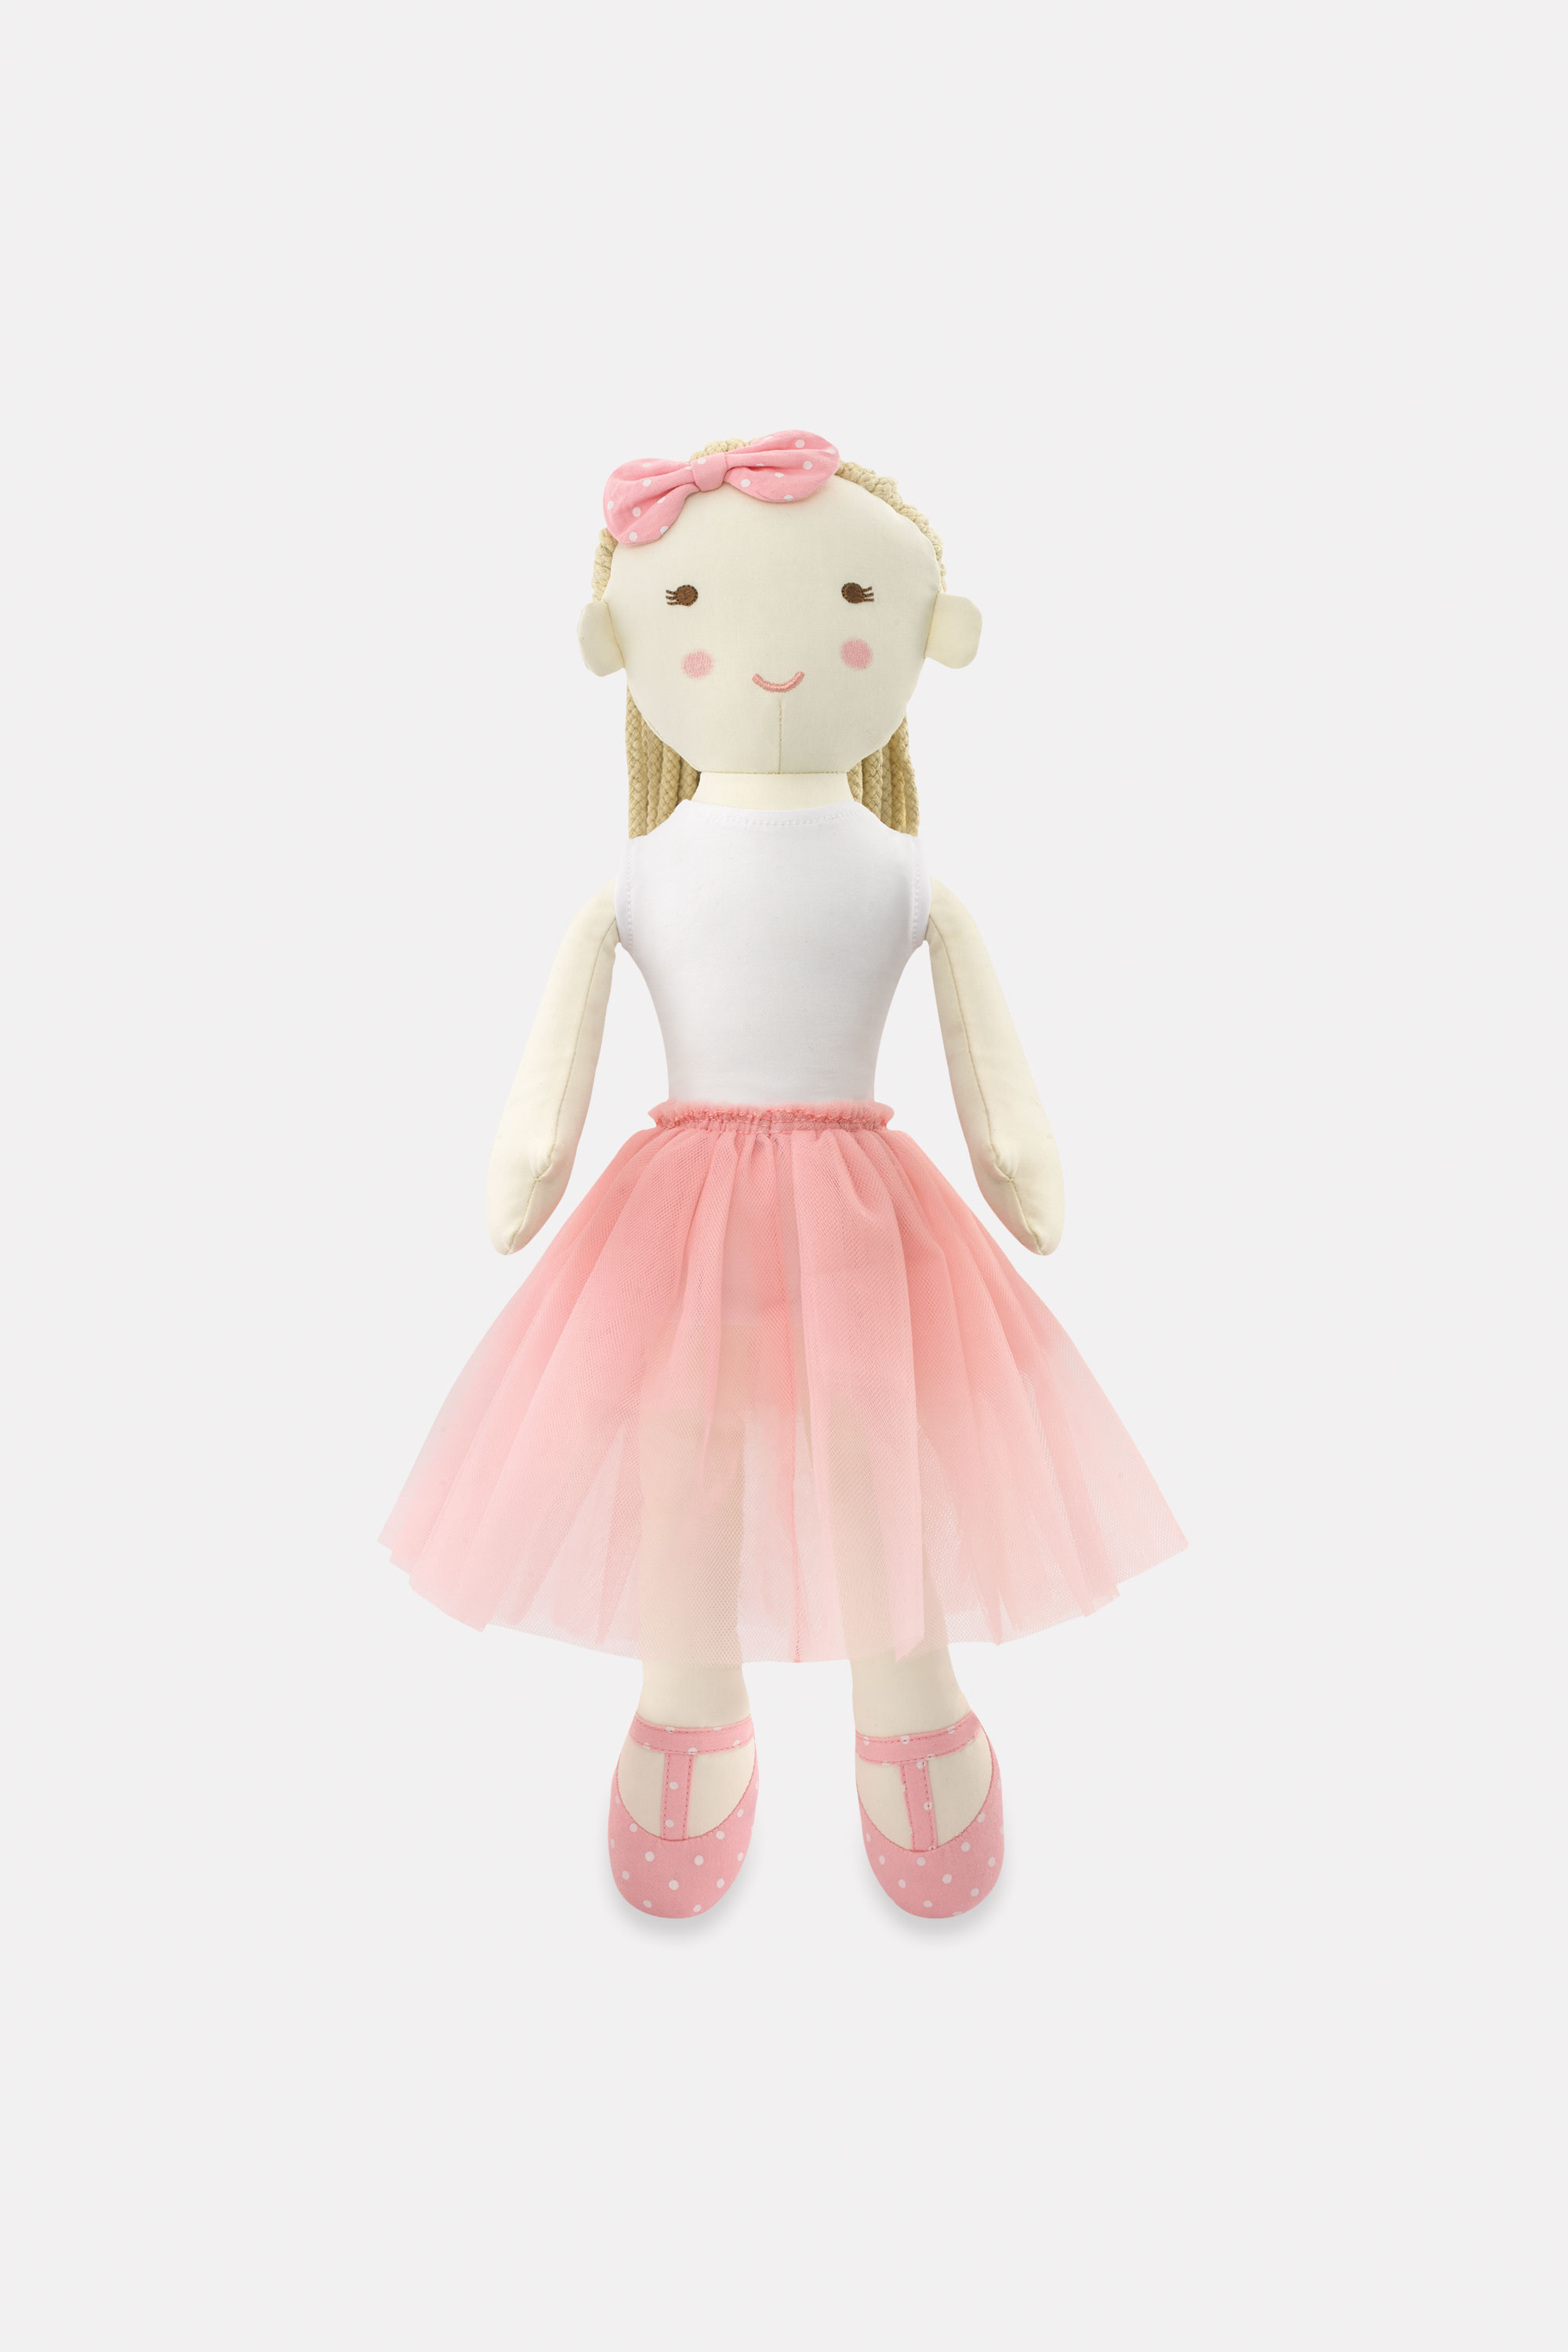 Cath Kidston Ballerina Rag Doll Solid in Cool Pink